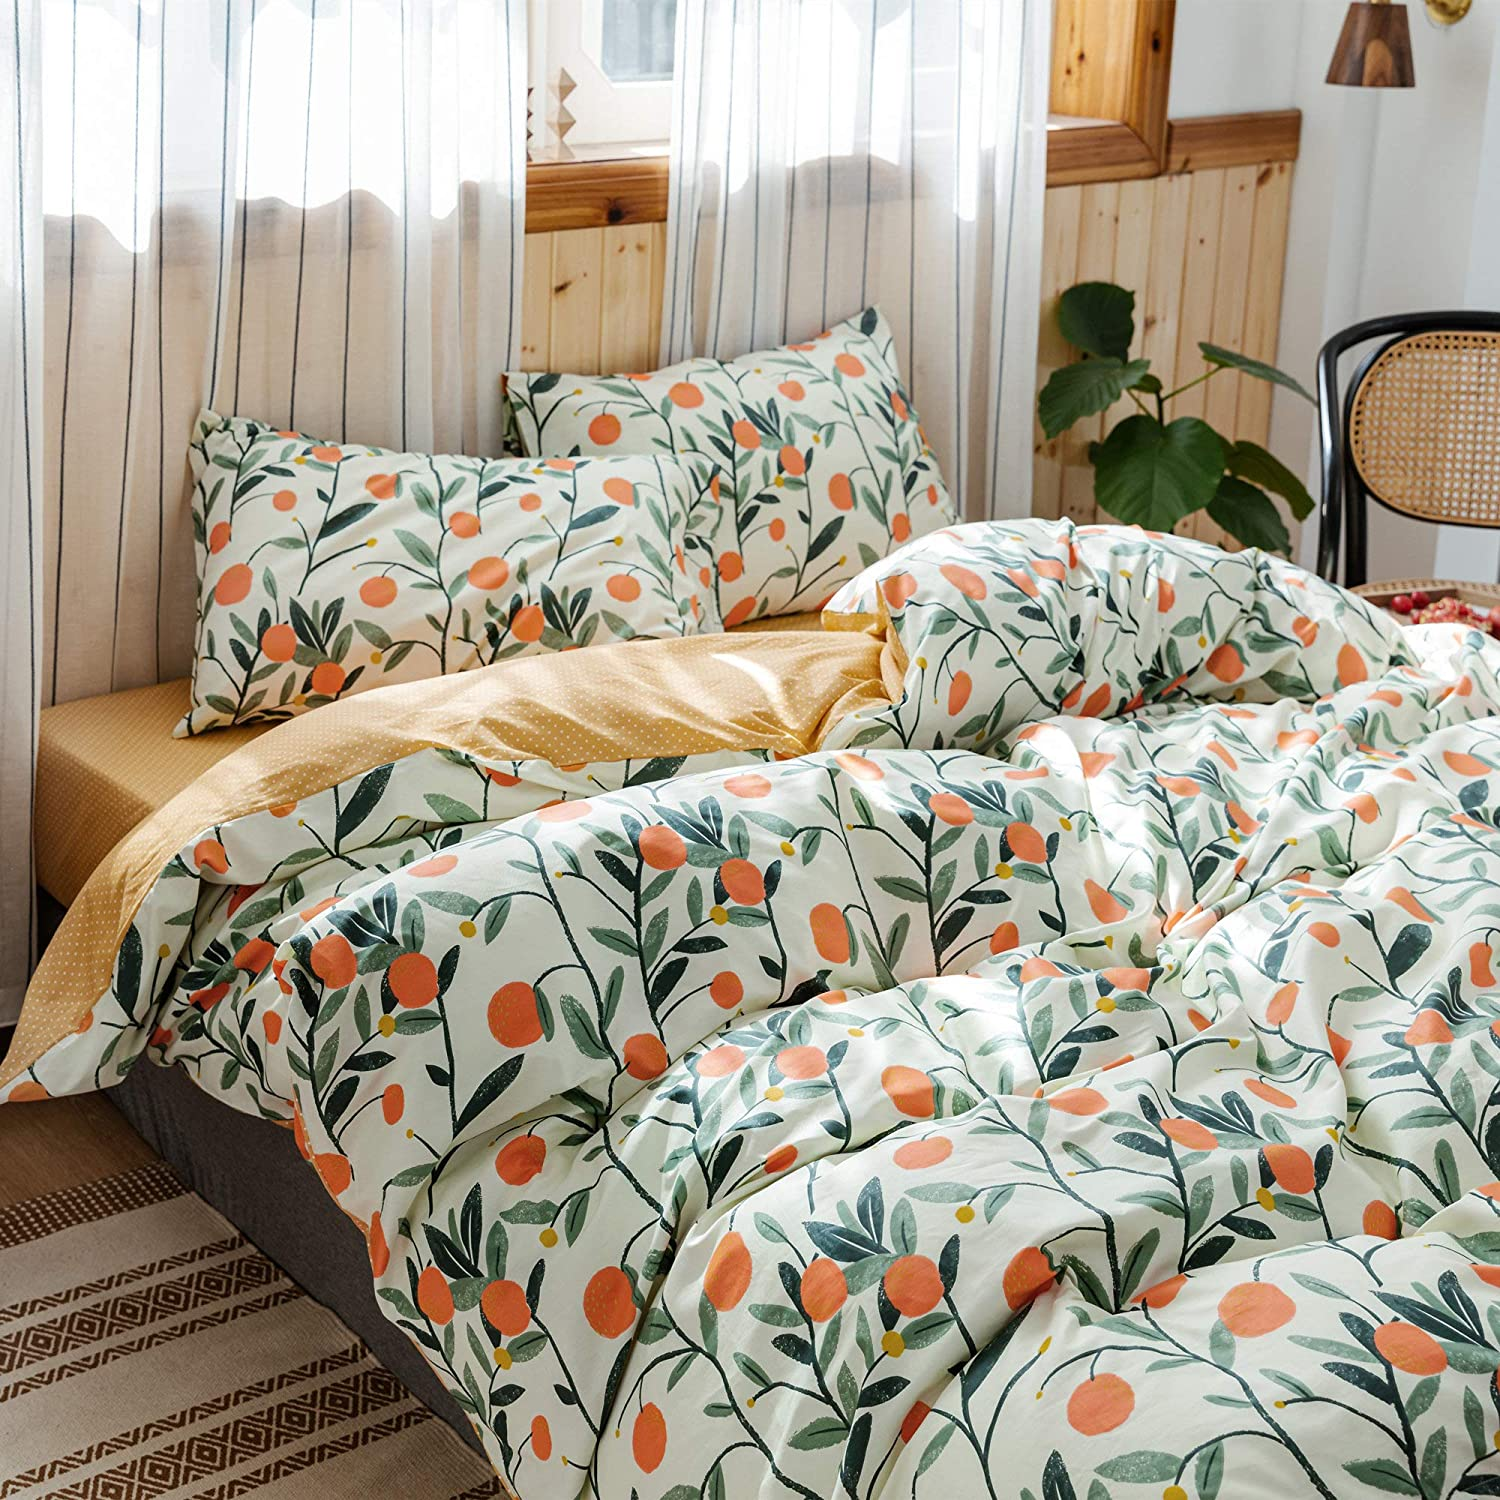 HoneiLife Duvet Cover Queen Size - 100% Cotton Comforter Cover Floral Duvet Cover Sets, Orange Duvet Cover with Zipper Closure & Corner Ties, 3pcs Wrinkle Free Comforter Cover Sets-Fruit: Home & Kitchen